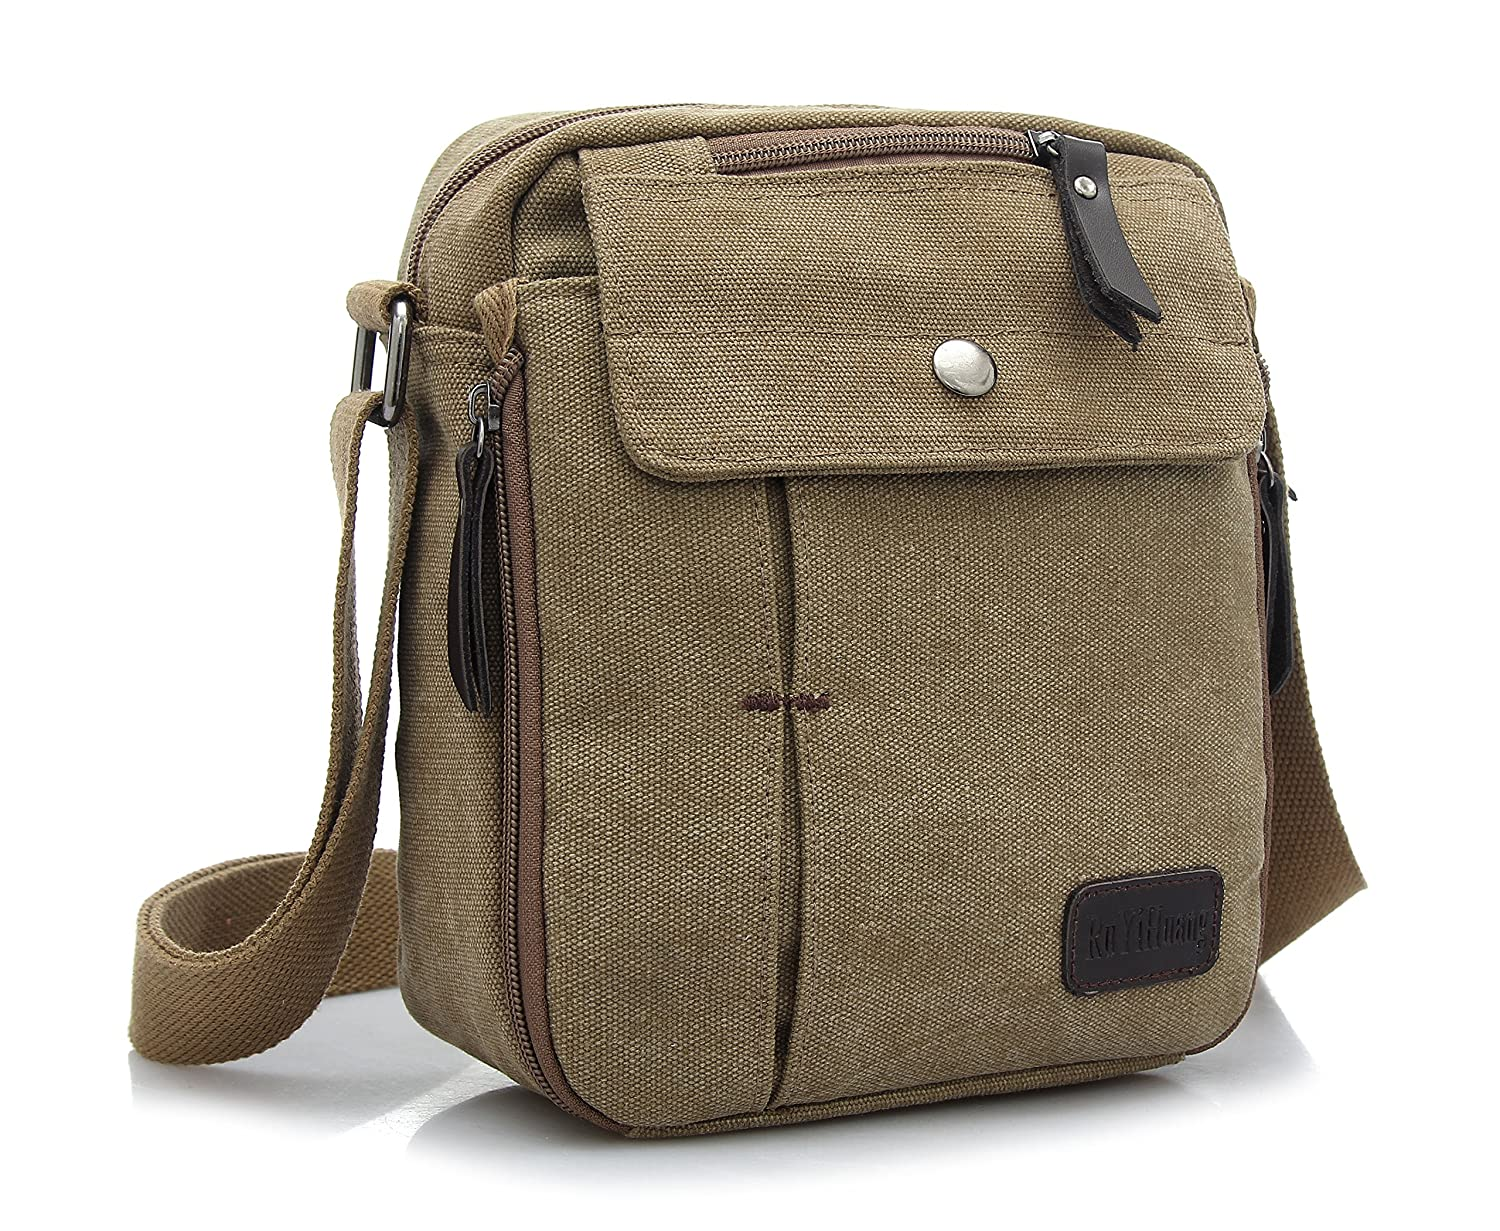 JULED Mens Small Vintage Shoulder Bag Canvas Sports Zipped Messenger Bag Durable Multi-pocket Sling Satchel bag